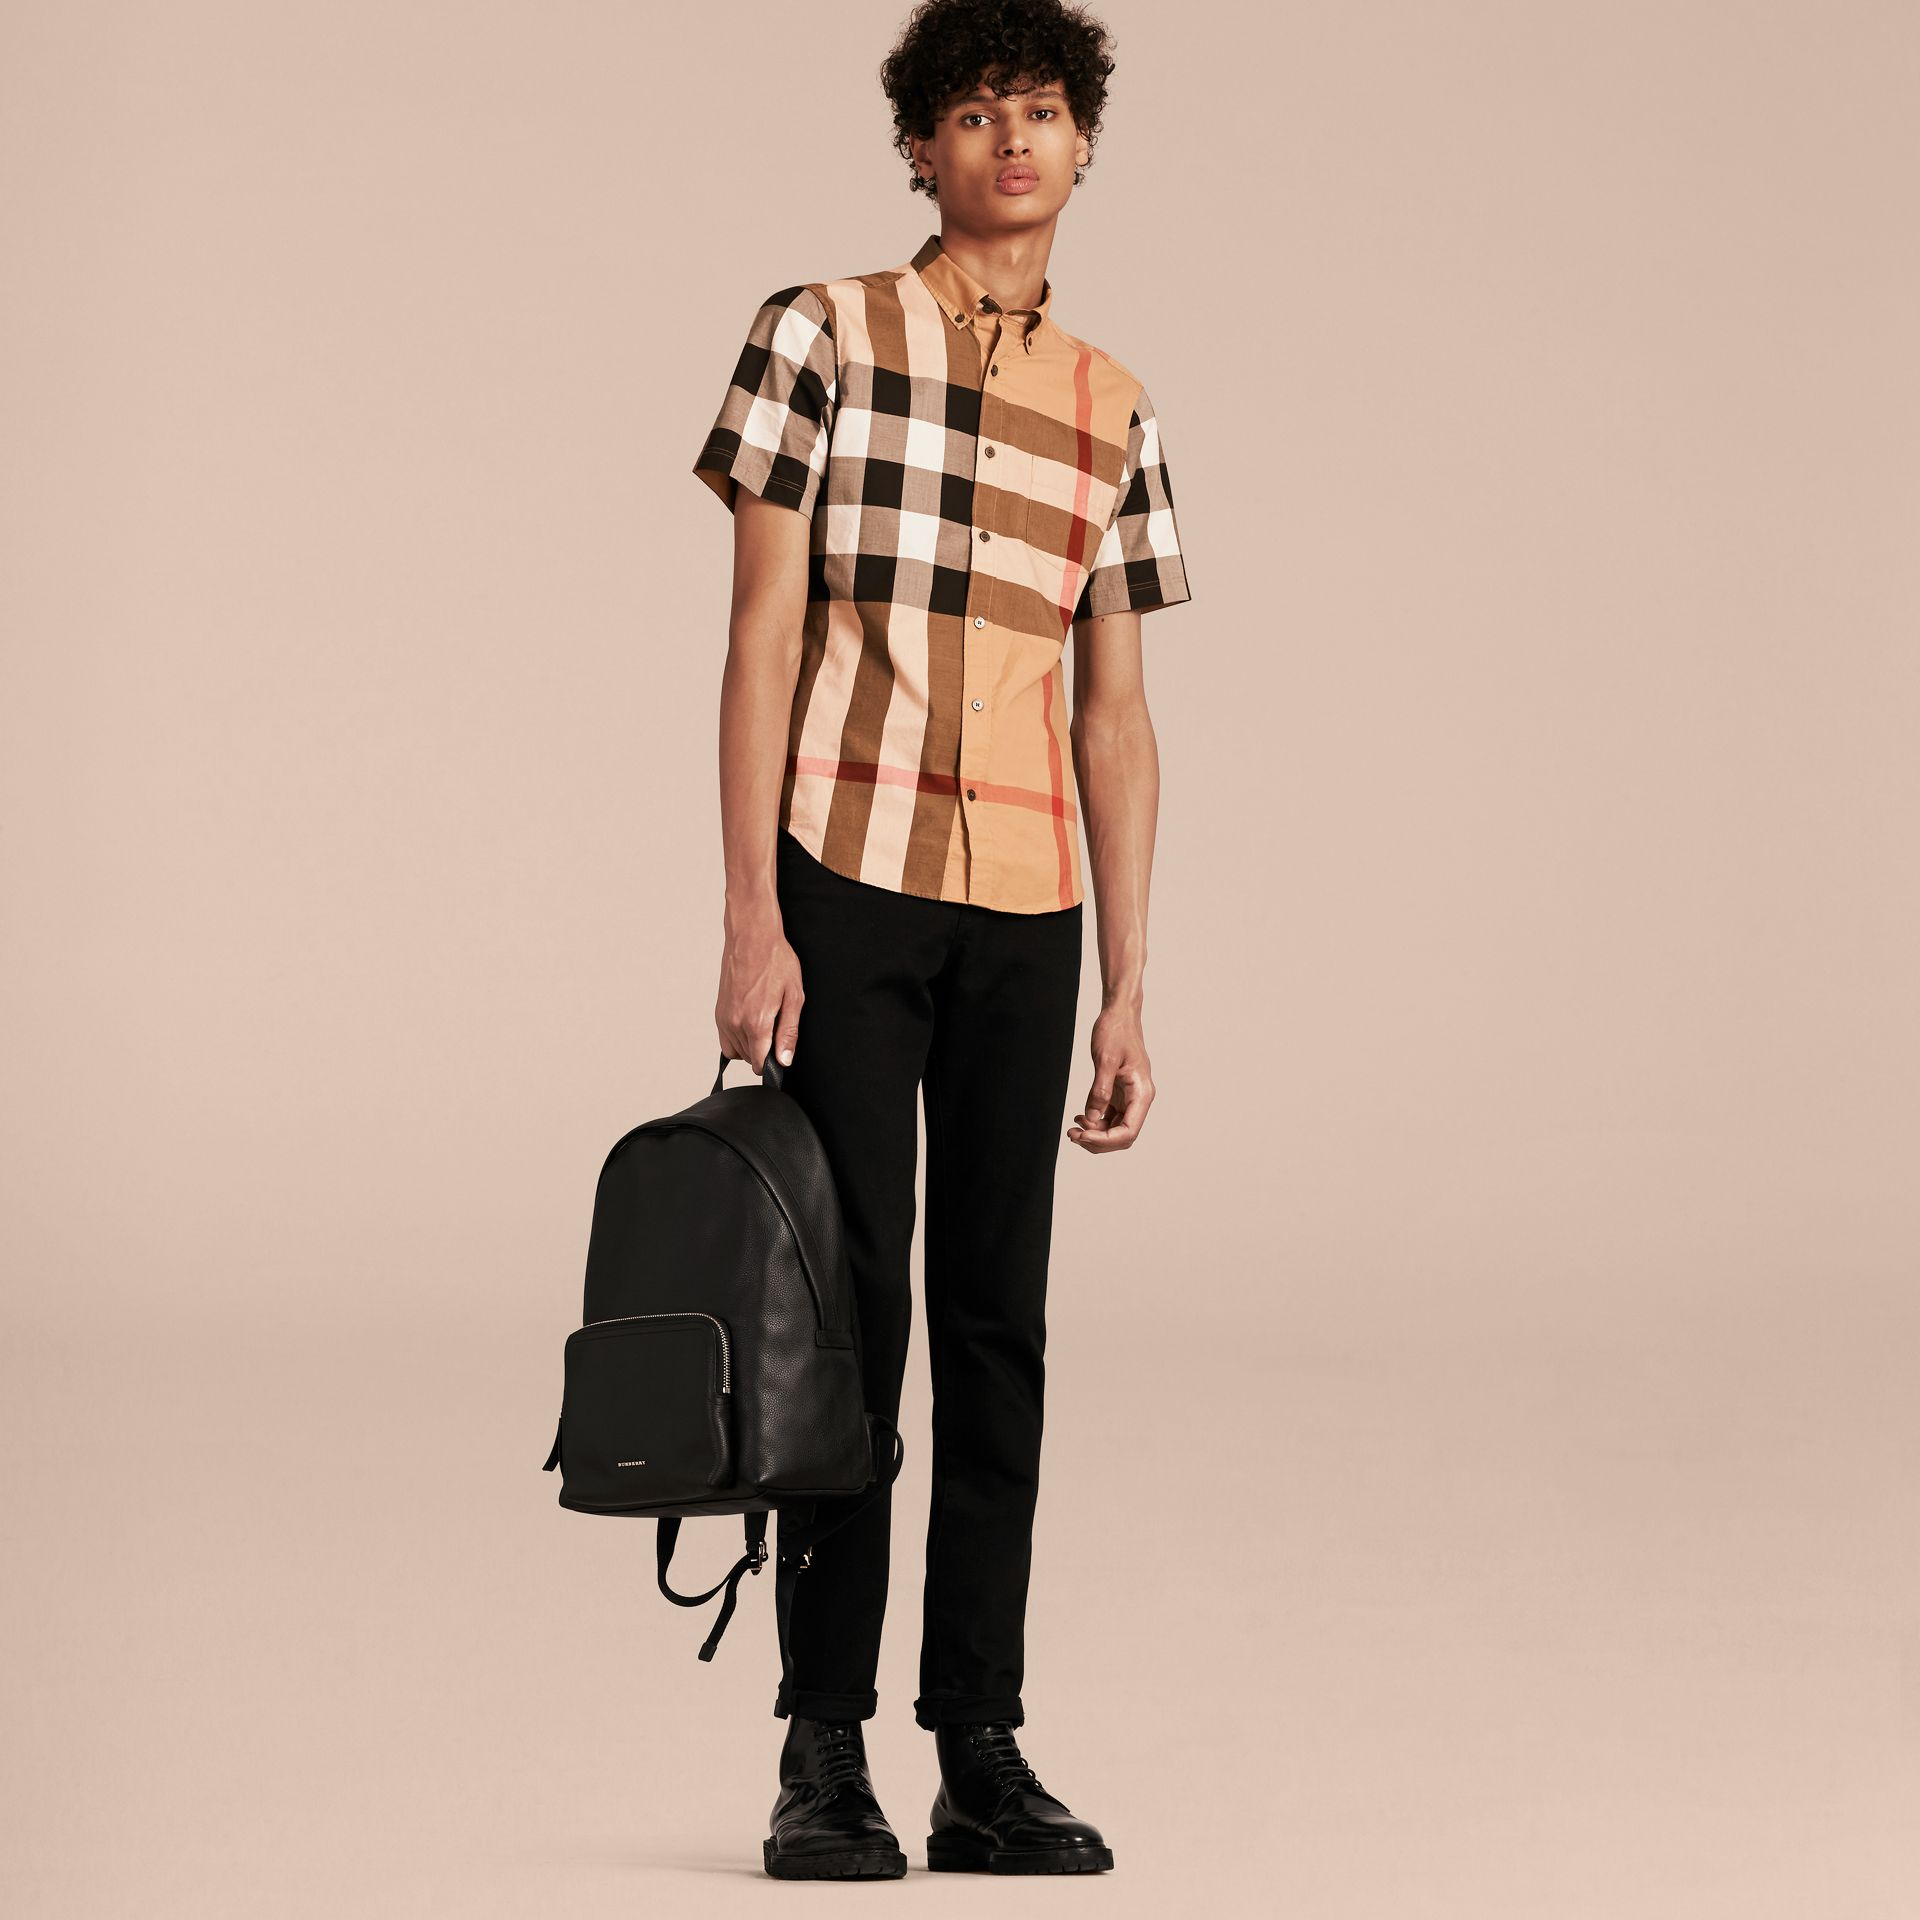 Camel Short-sleeved Check Cotton Shirt Camel - gallery image 6